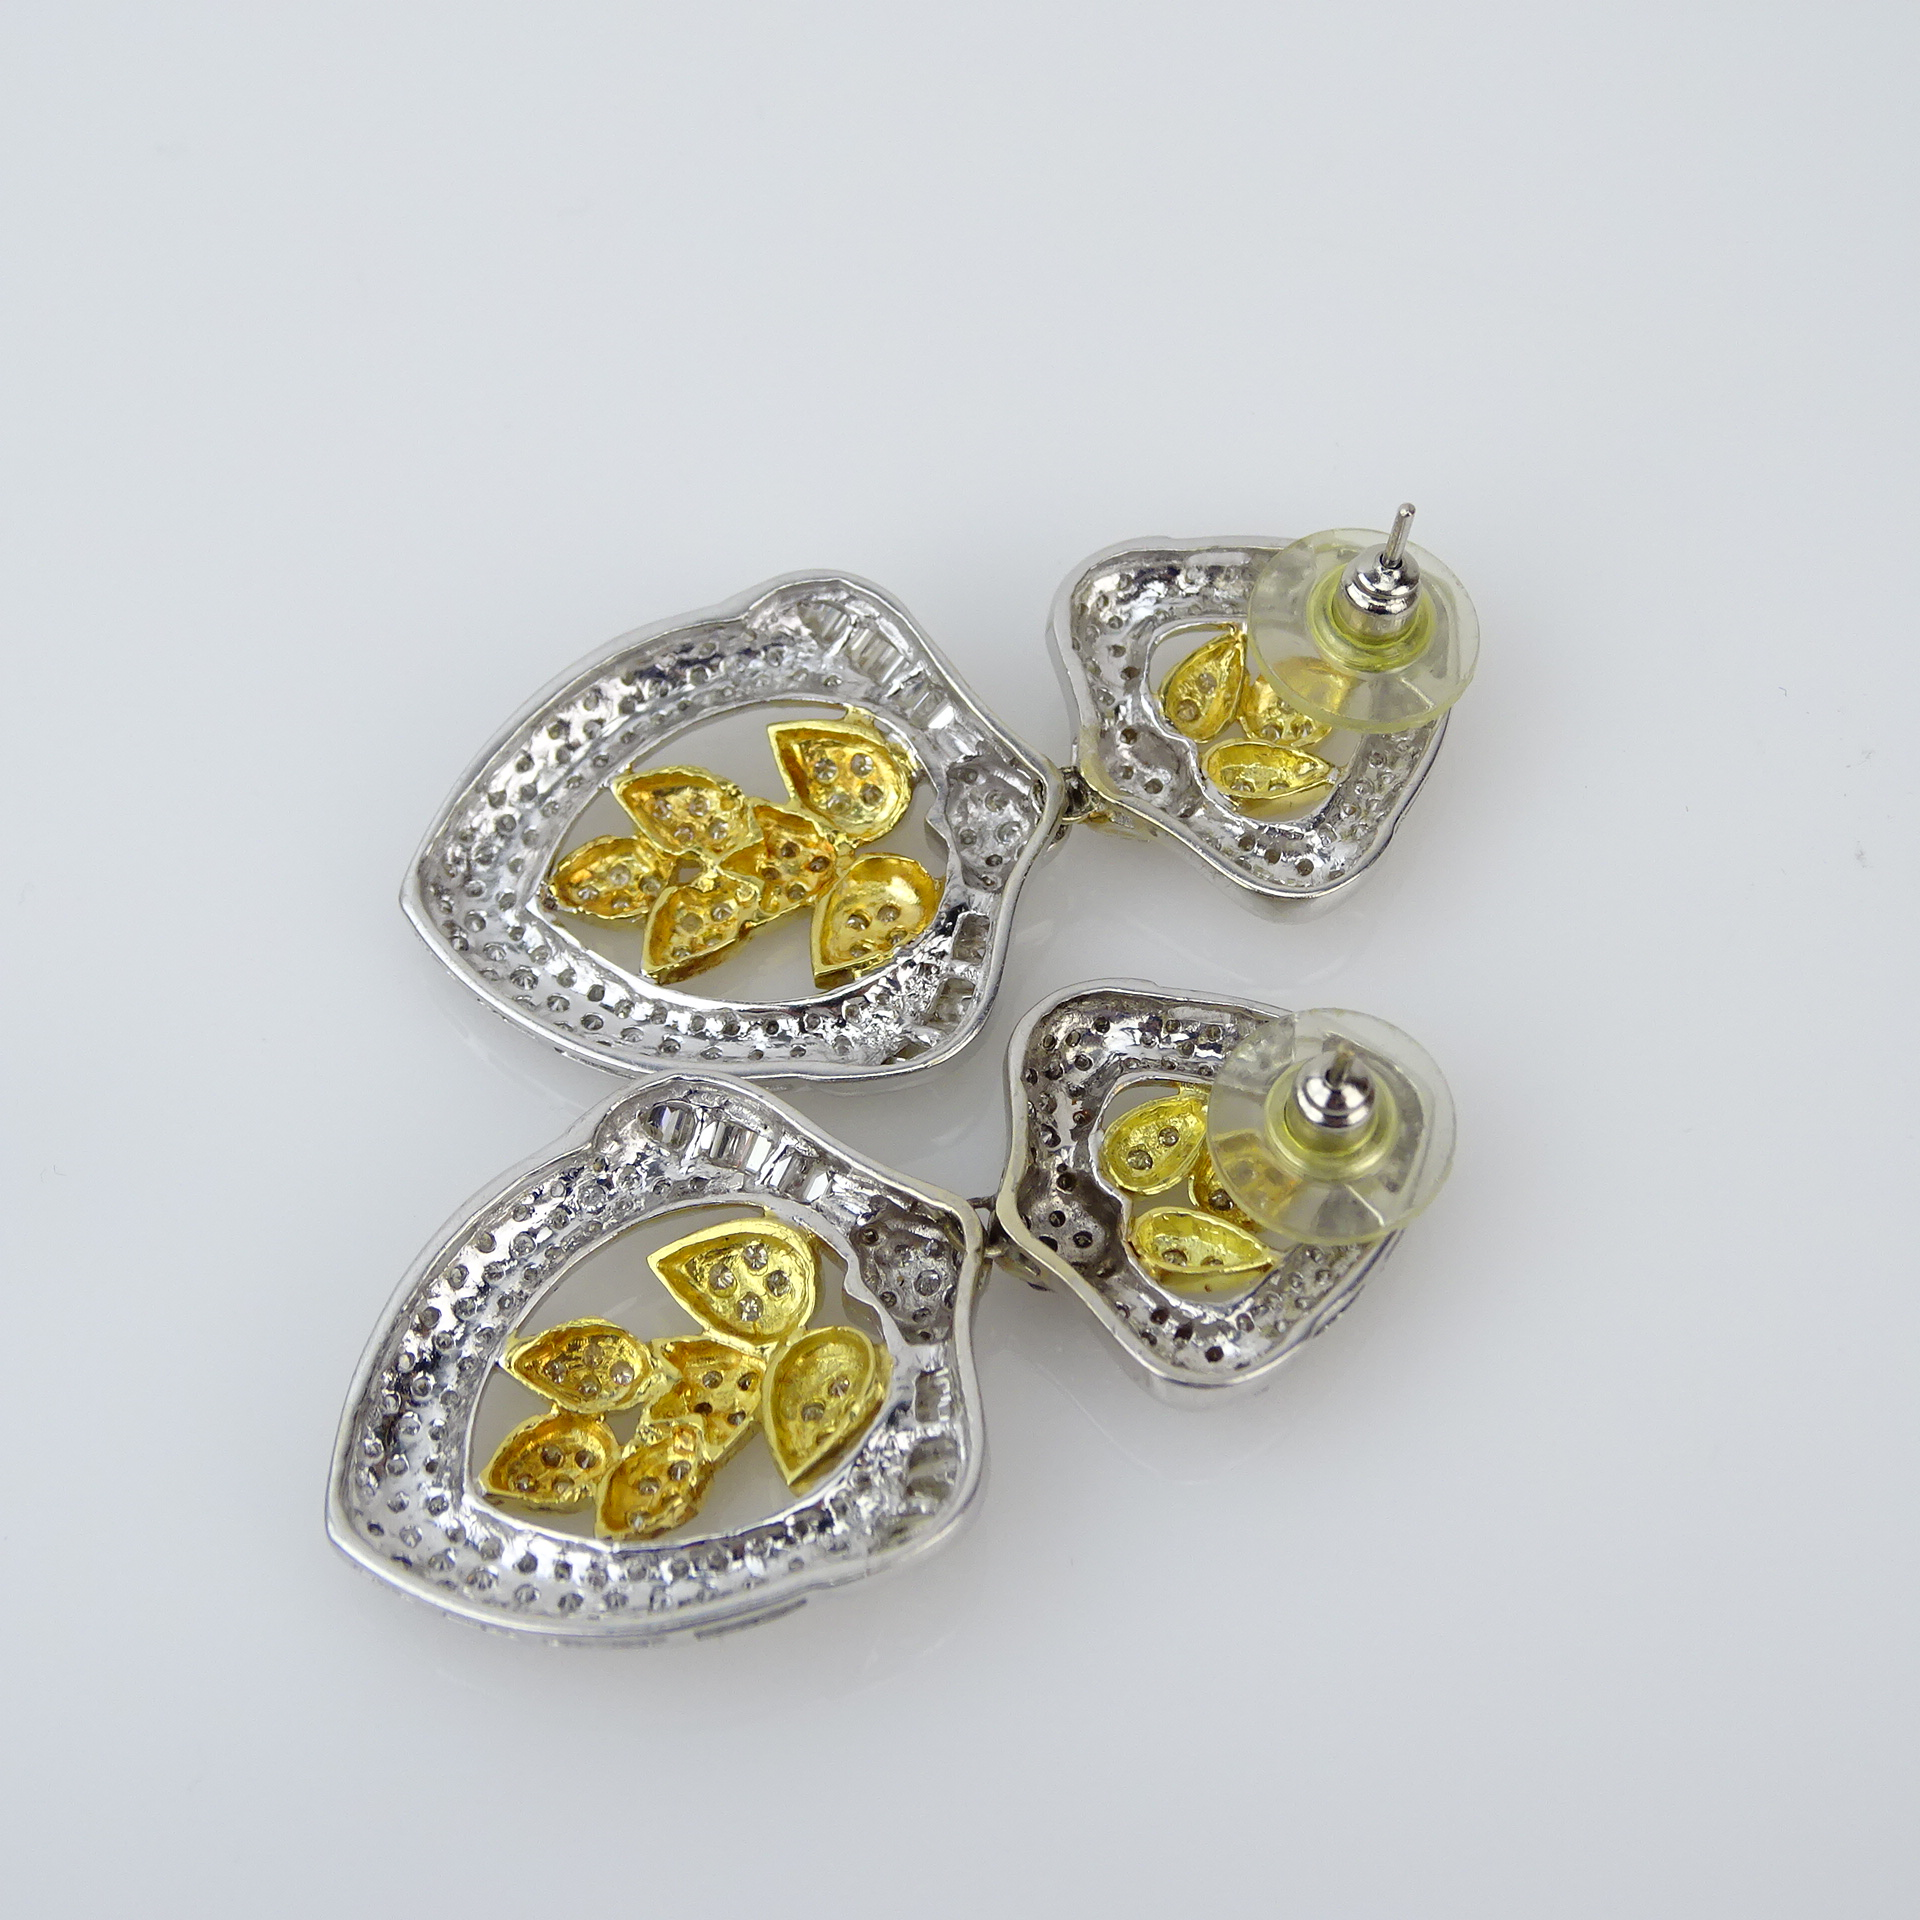 Pave Set Round Cut and Baguette Diamond and 18 Karat White and Yellow Gold Pendant Earrings